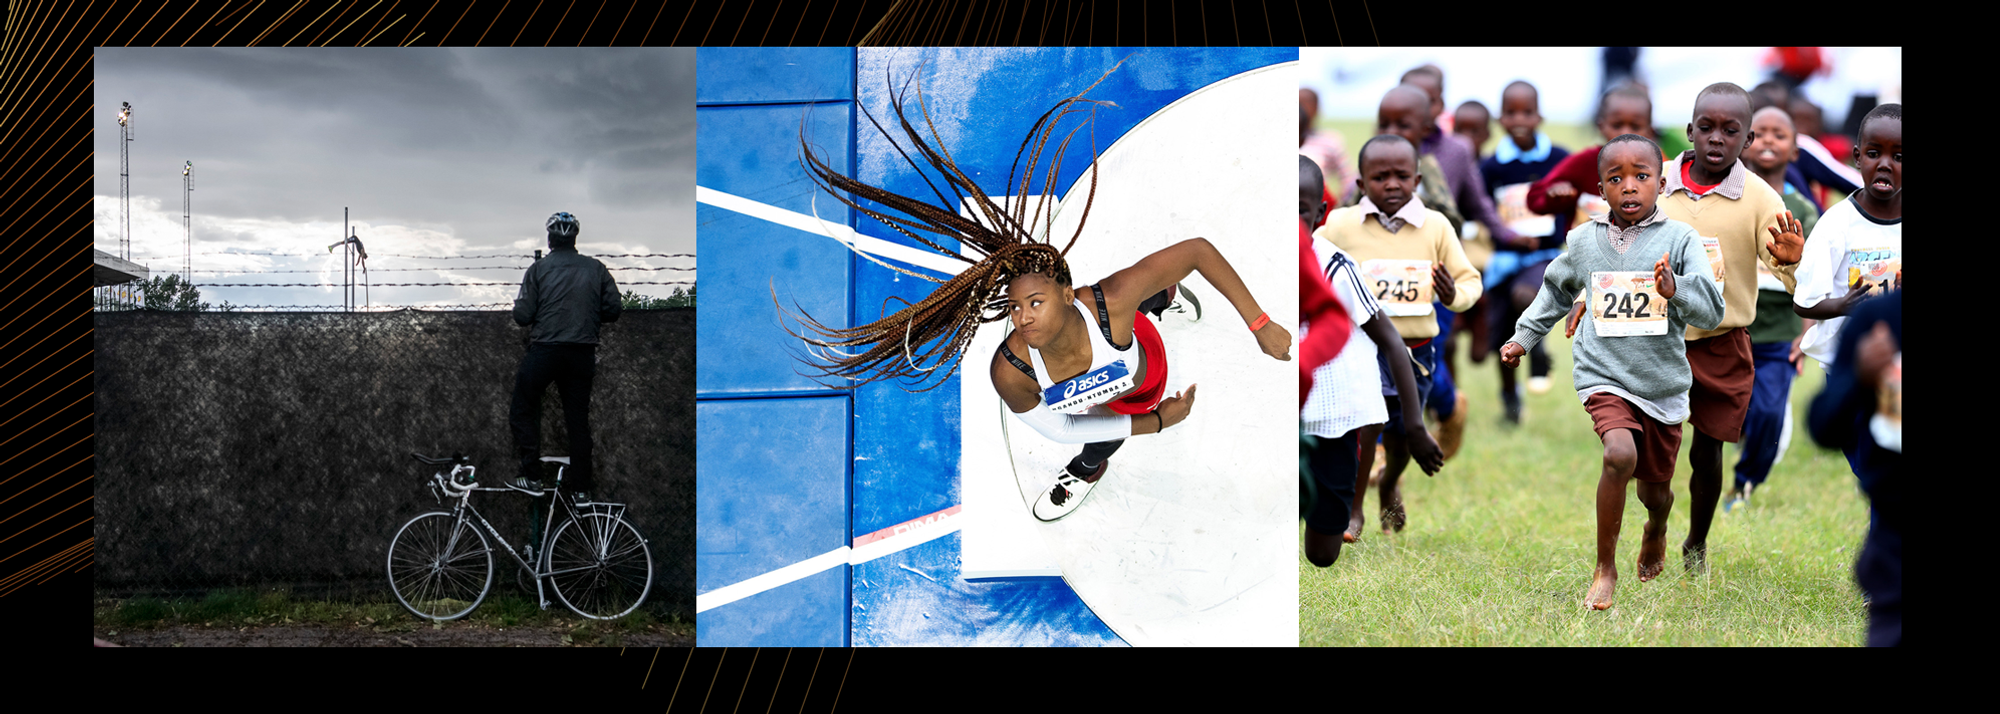 Finalists announced for World Athletics Photograph of the Year award